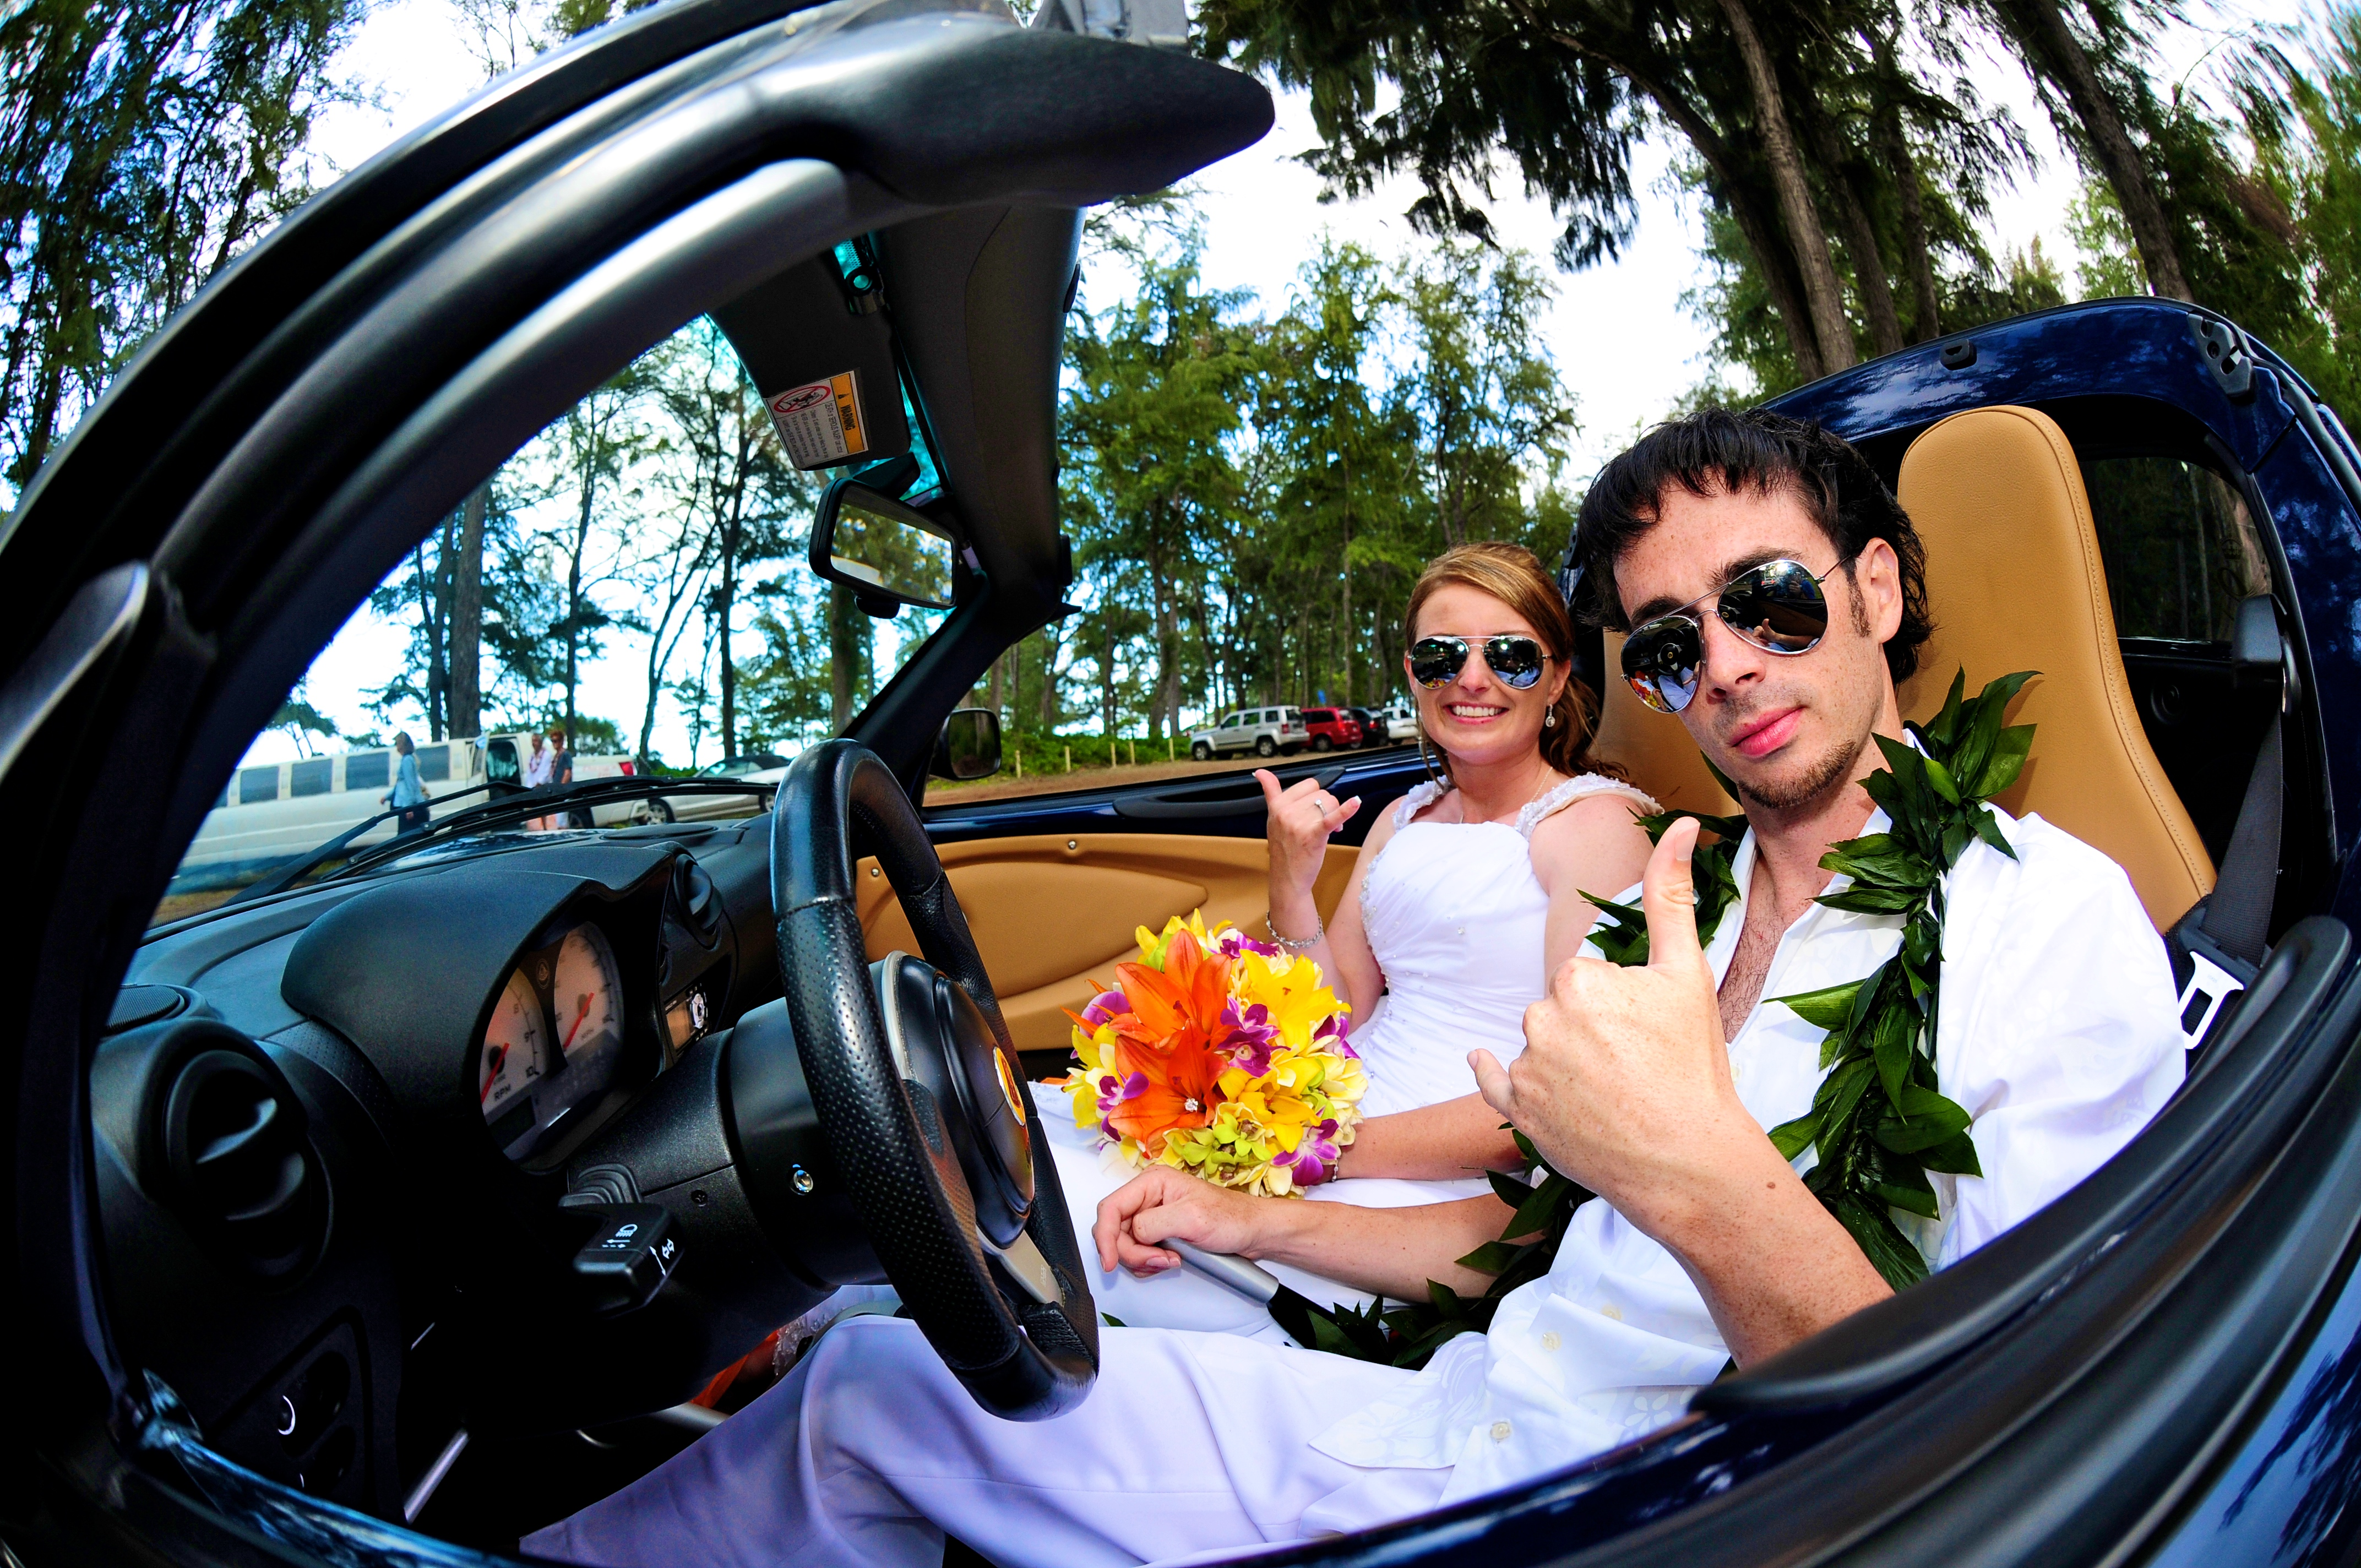 alohaislandweddings- Lotus car -36